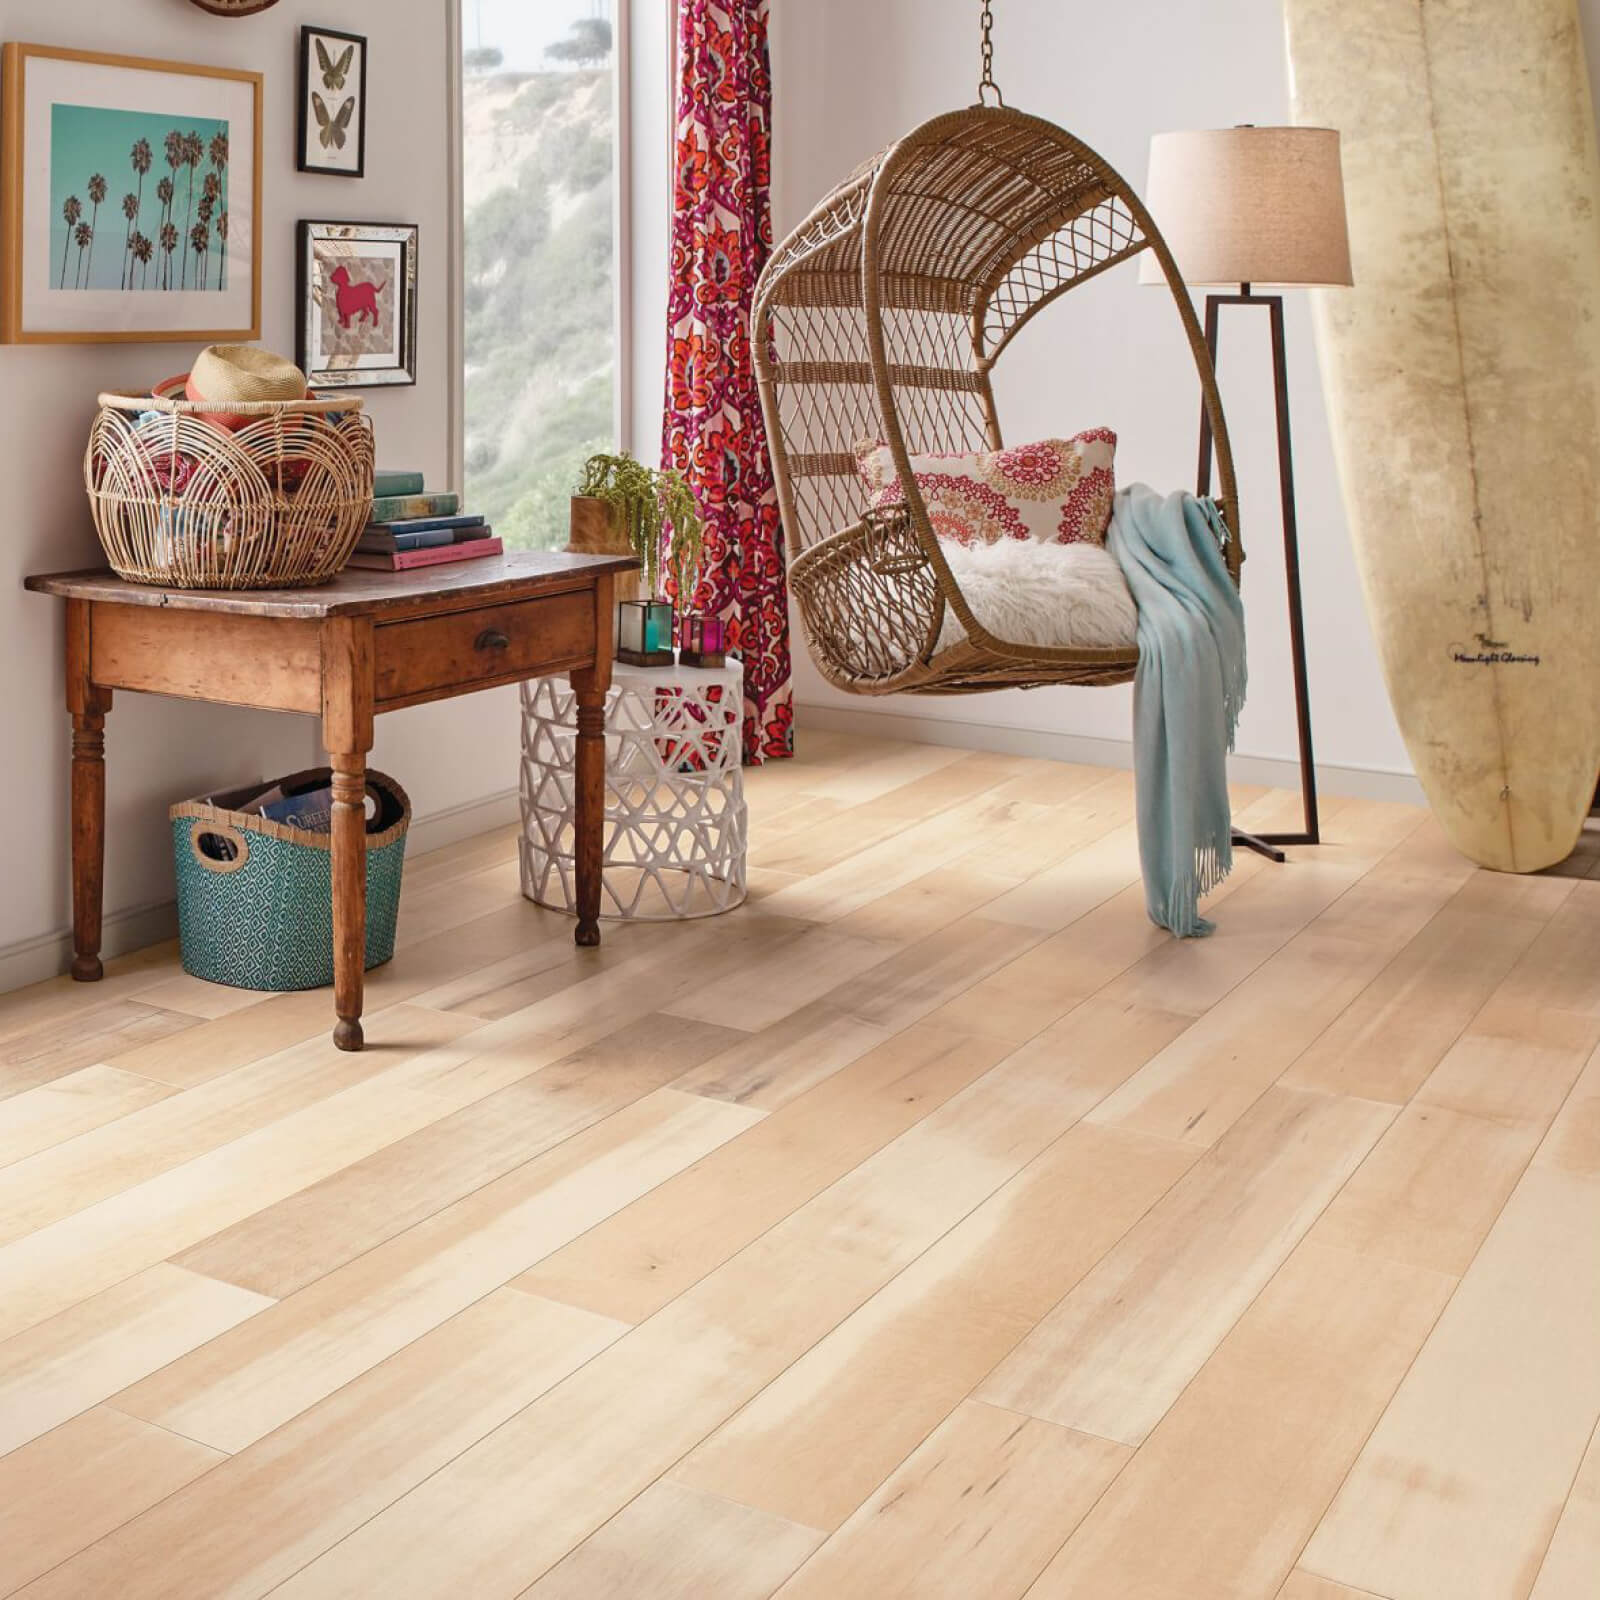 4 Flooring Tips for Small Rooms